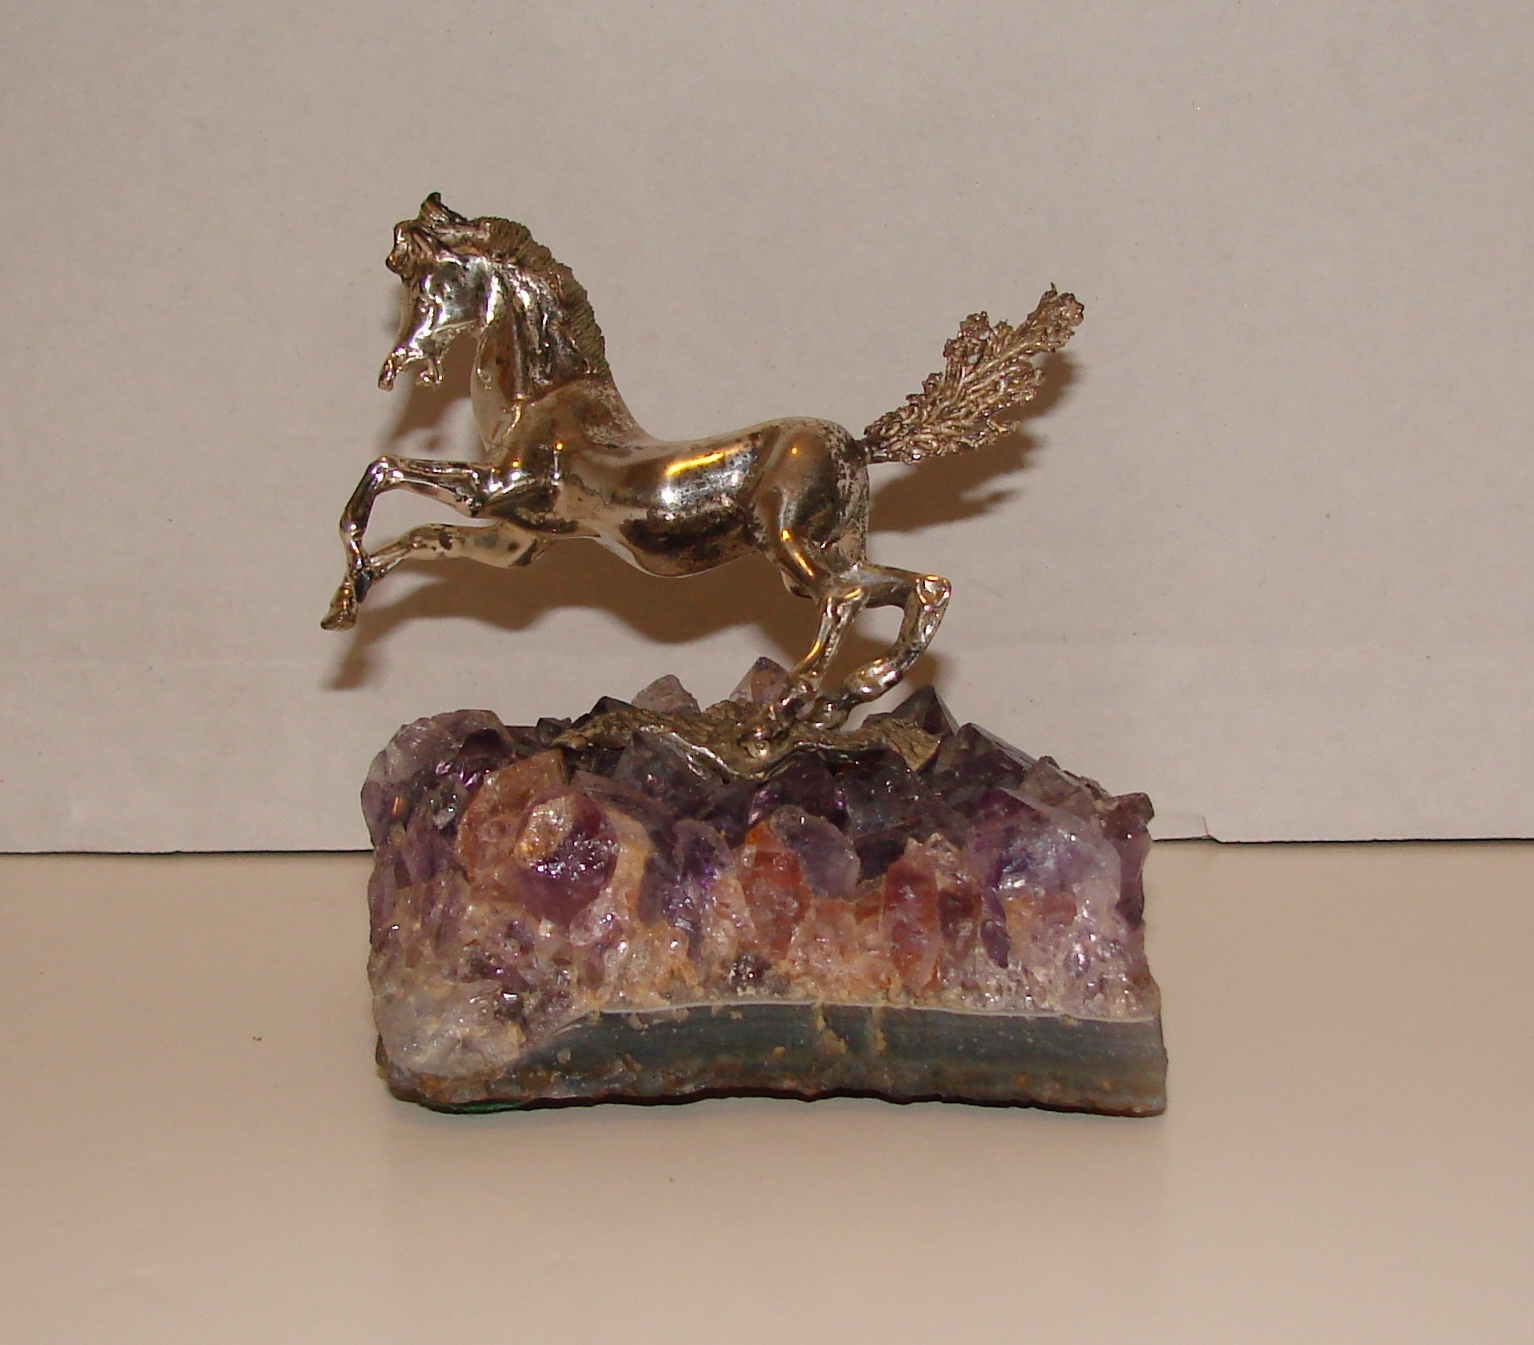 Silver Finished Horse Figure Embedded in an  Amethyst Geode Base - $22.00